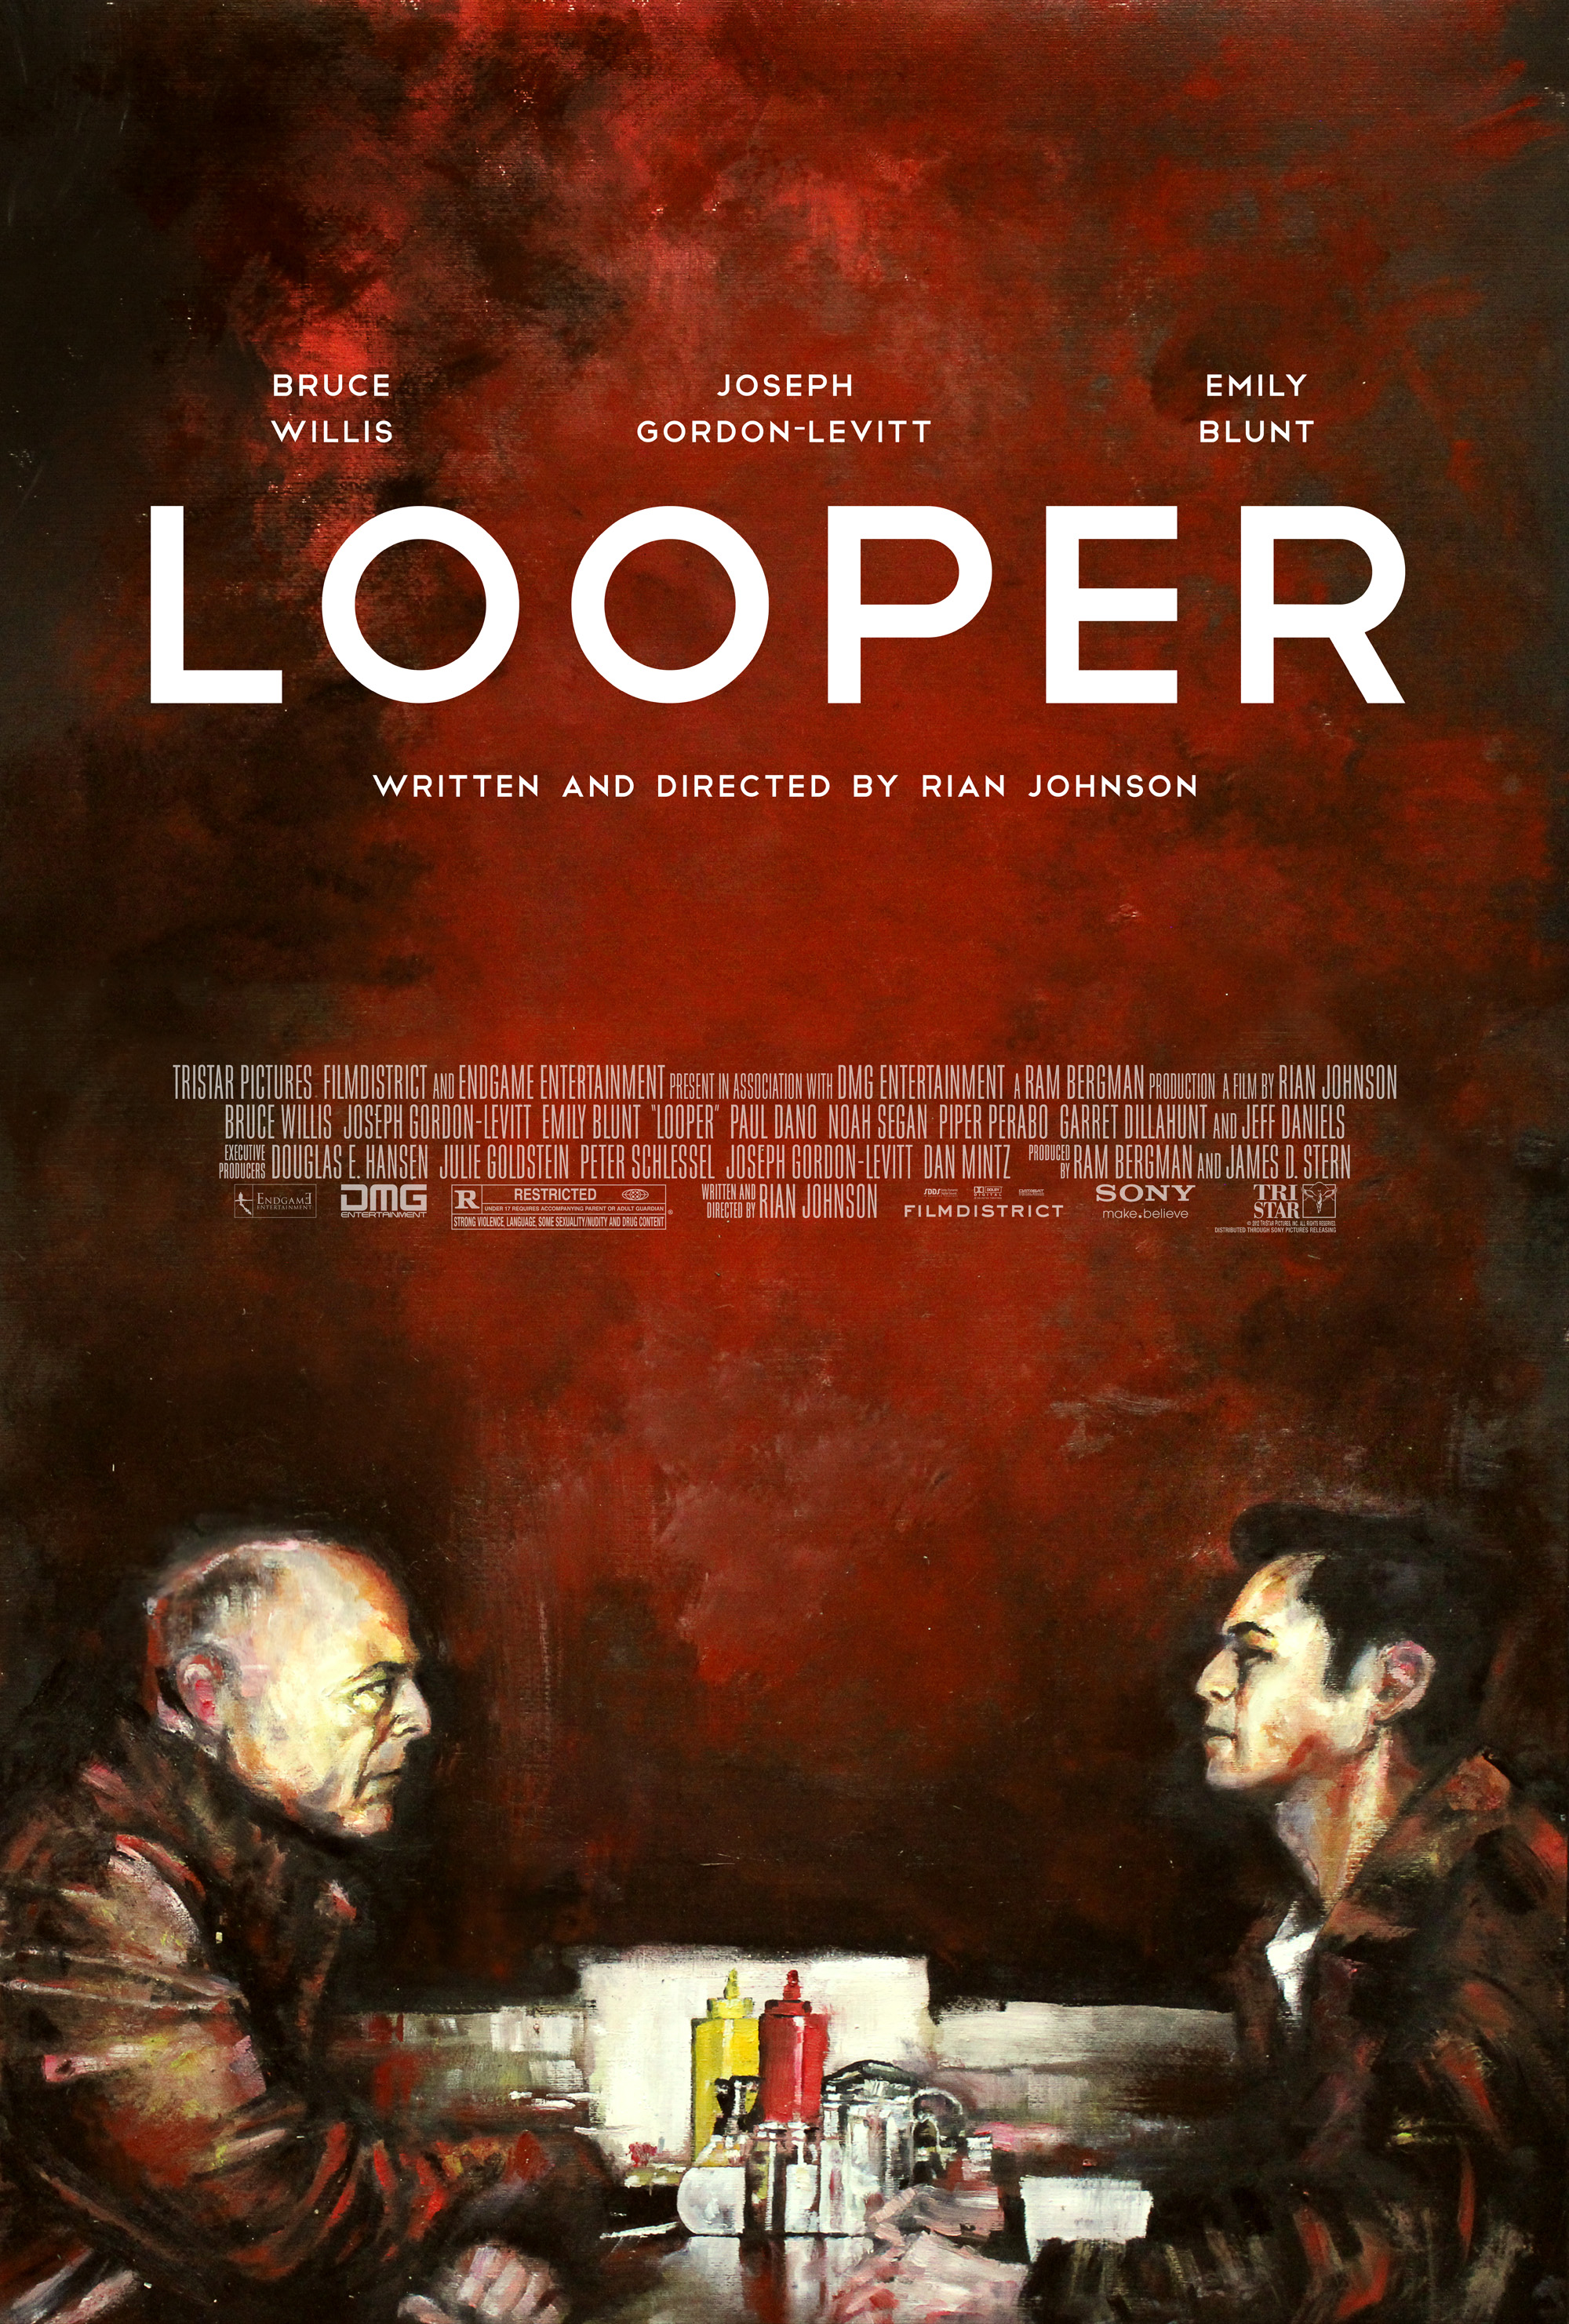 Looper Poster by Zachary Johnson